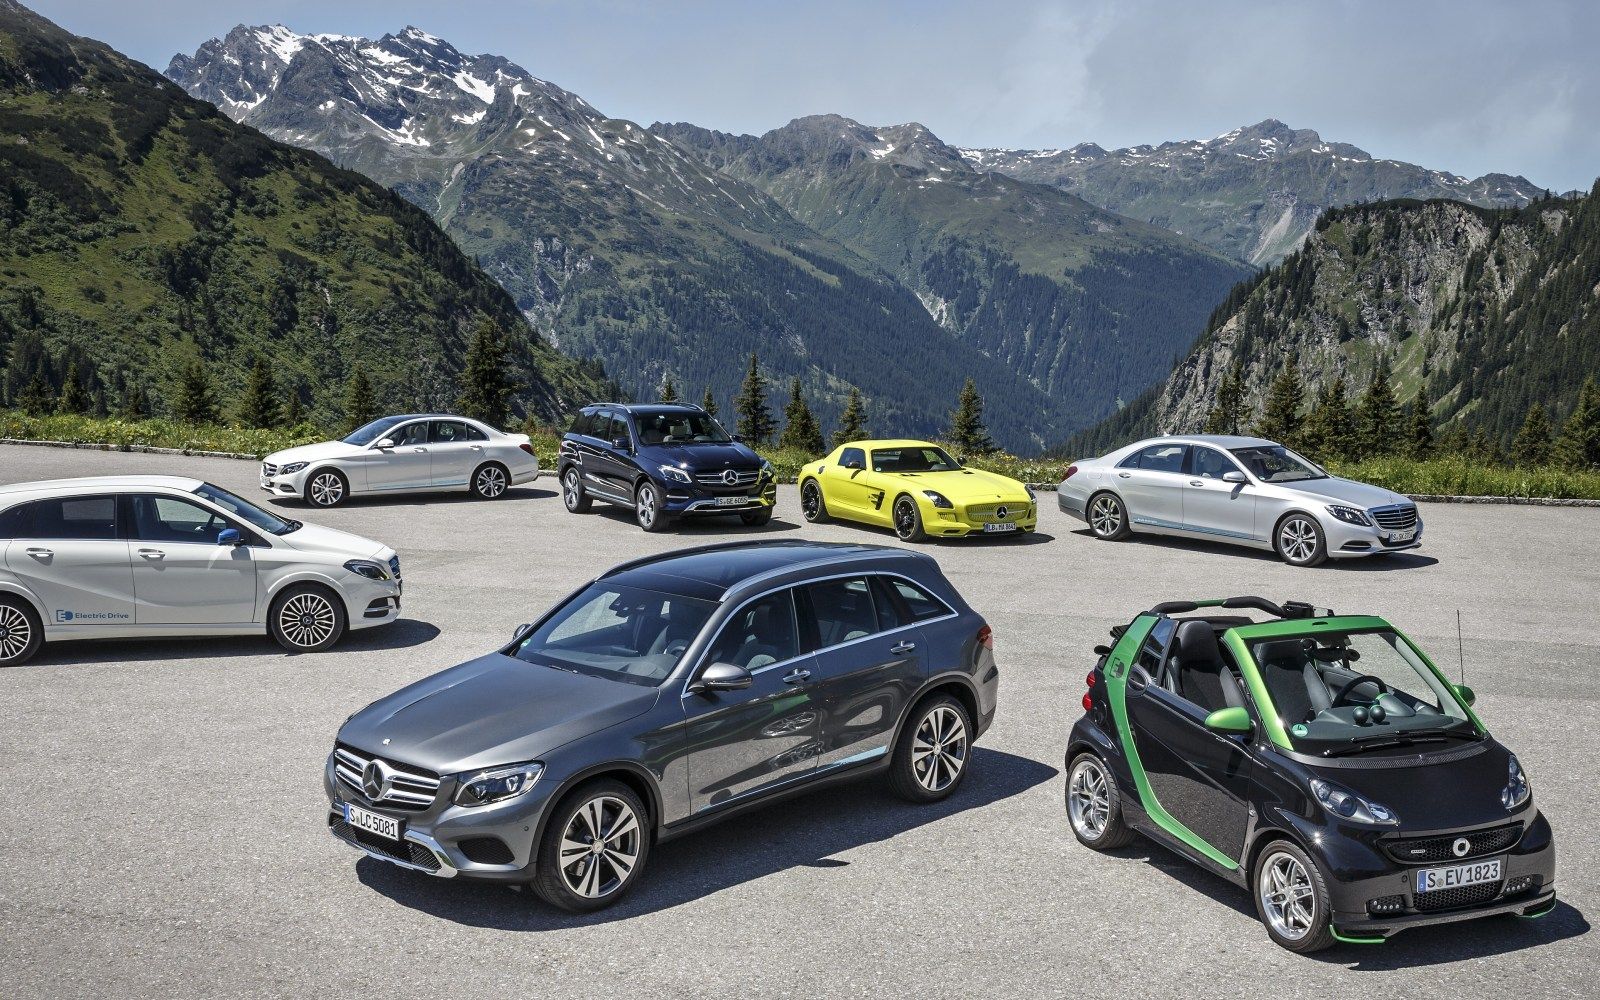 Germany pushes for Europe-wide ban on gas-powered cars by 2030, only EV sales onward